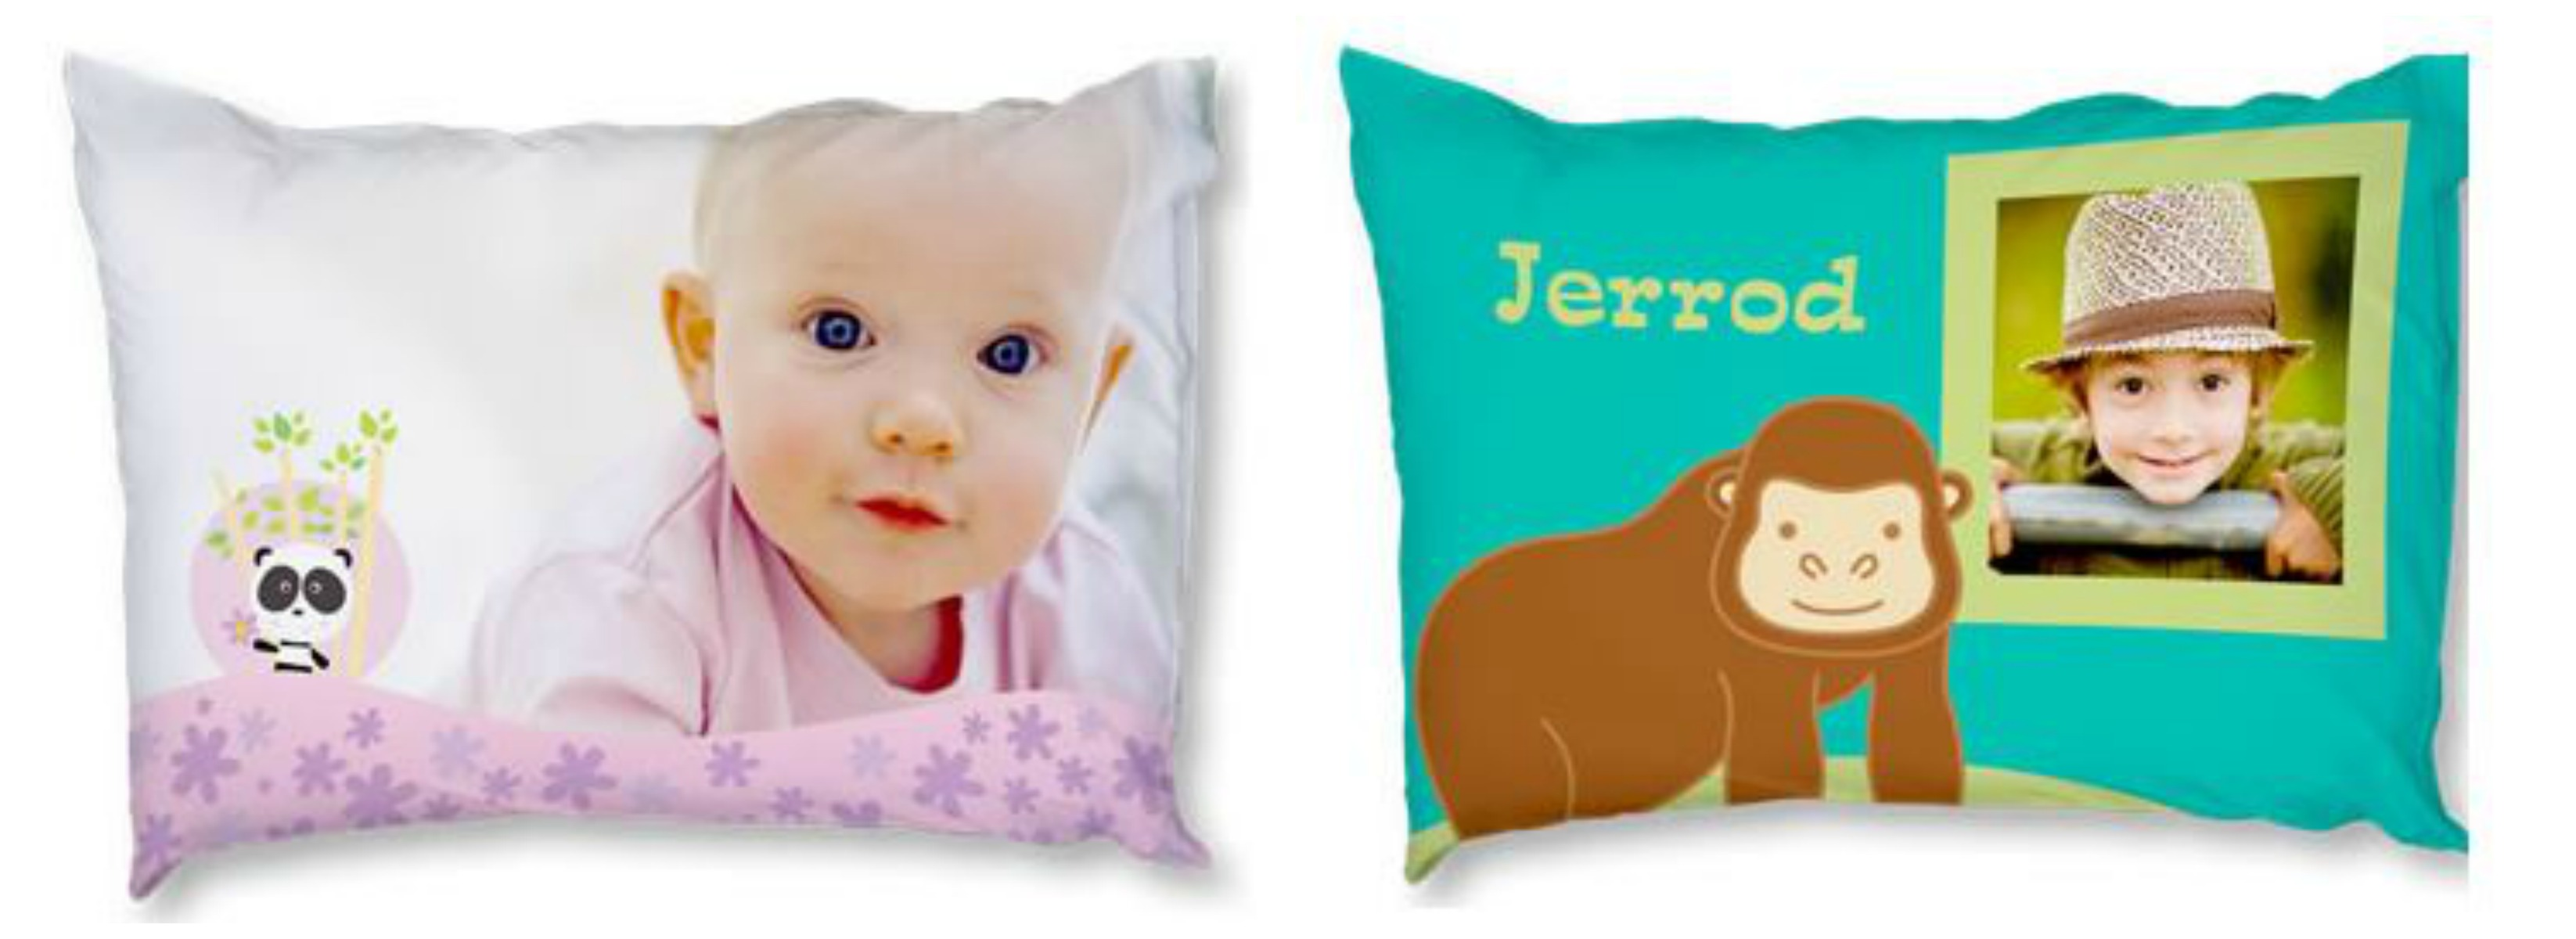 pin hellospring monday promo pillow sunday pt coupon pillows start code with throw com end sale details spring off